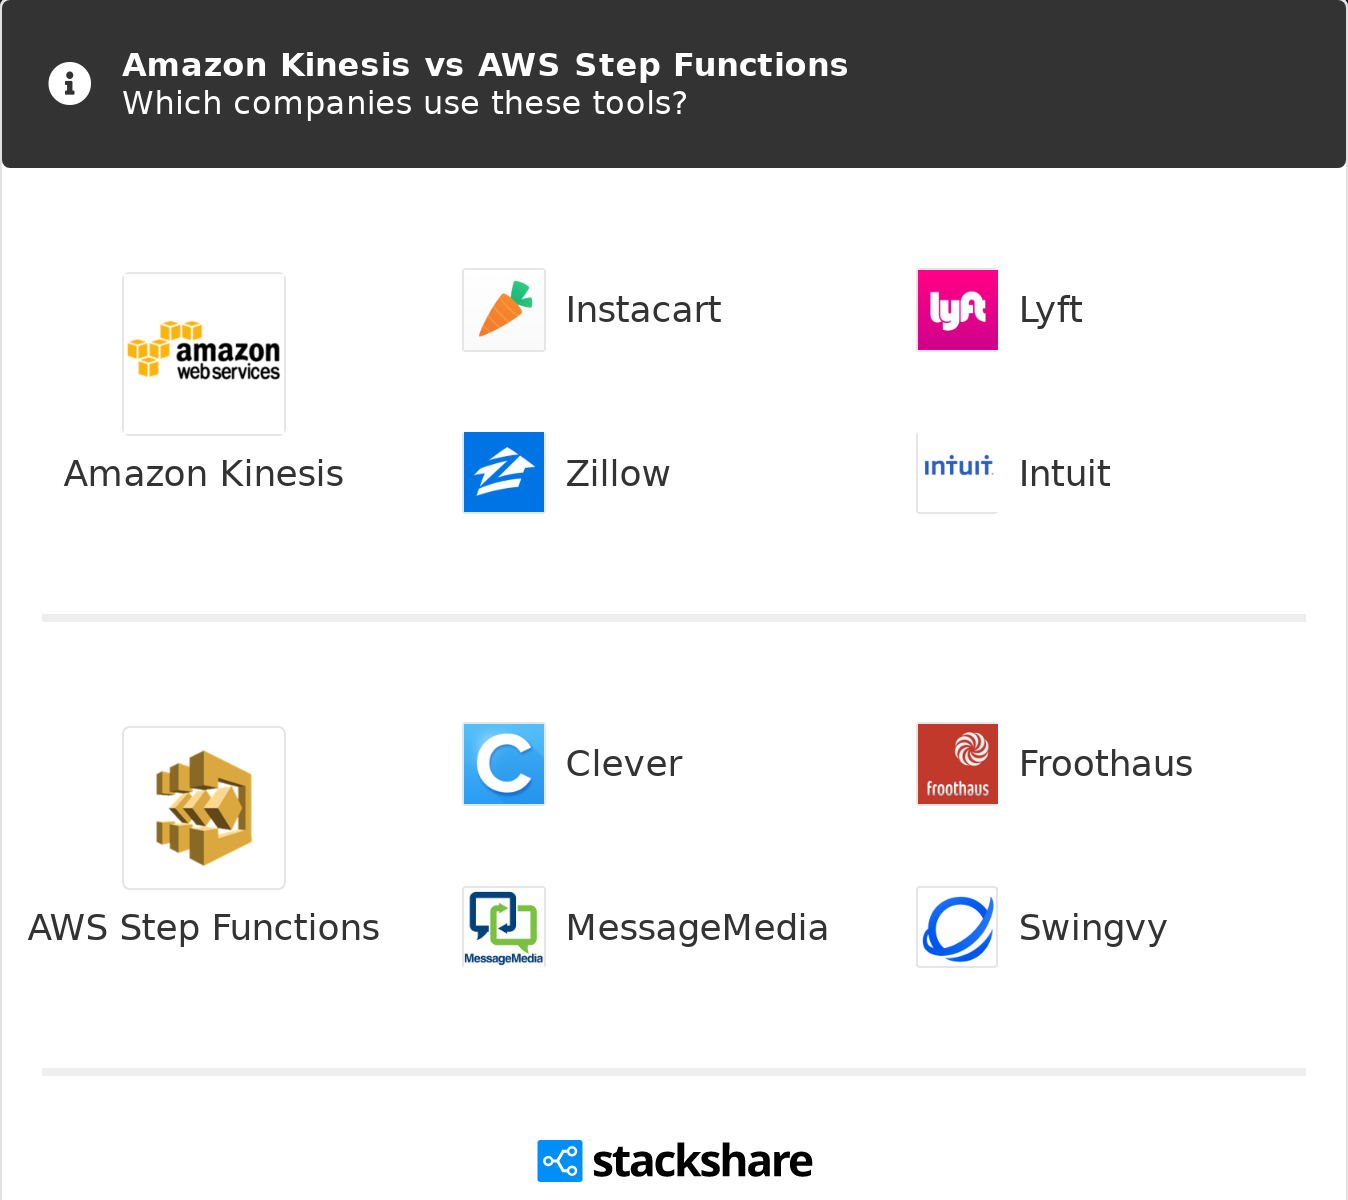 Amazon Kinesis vs AWS Step Functions   What are the differences?